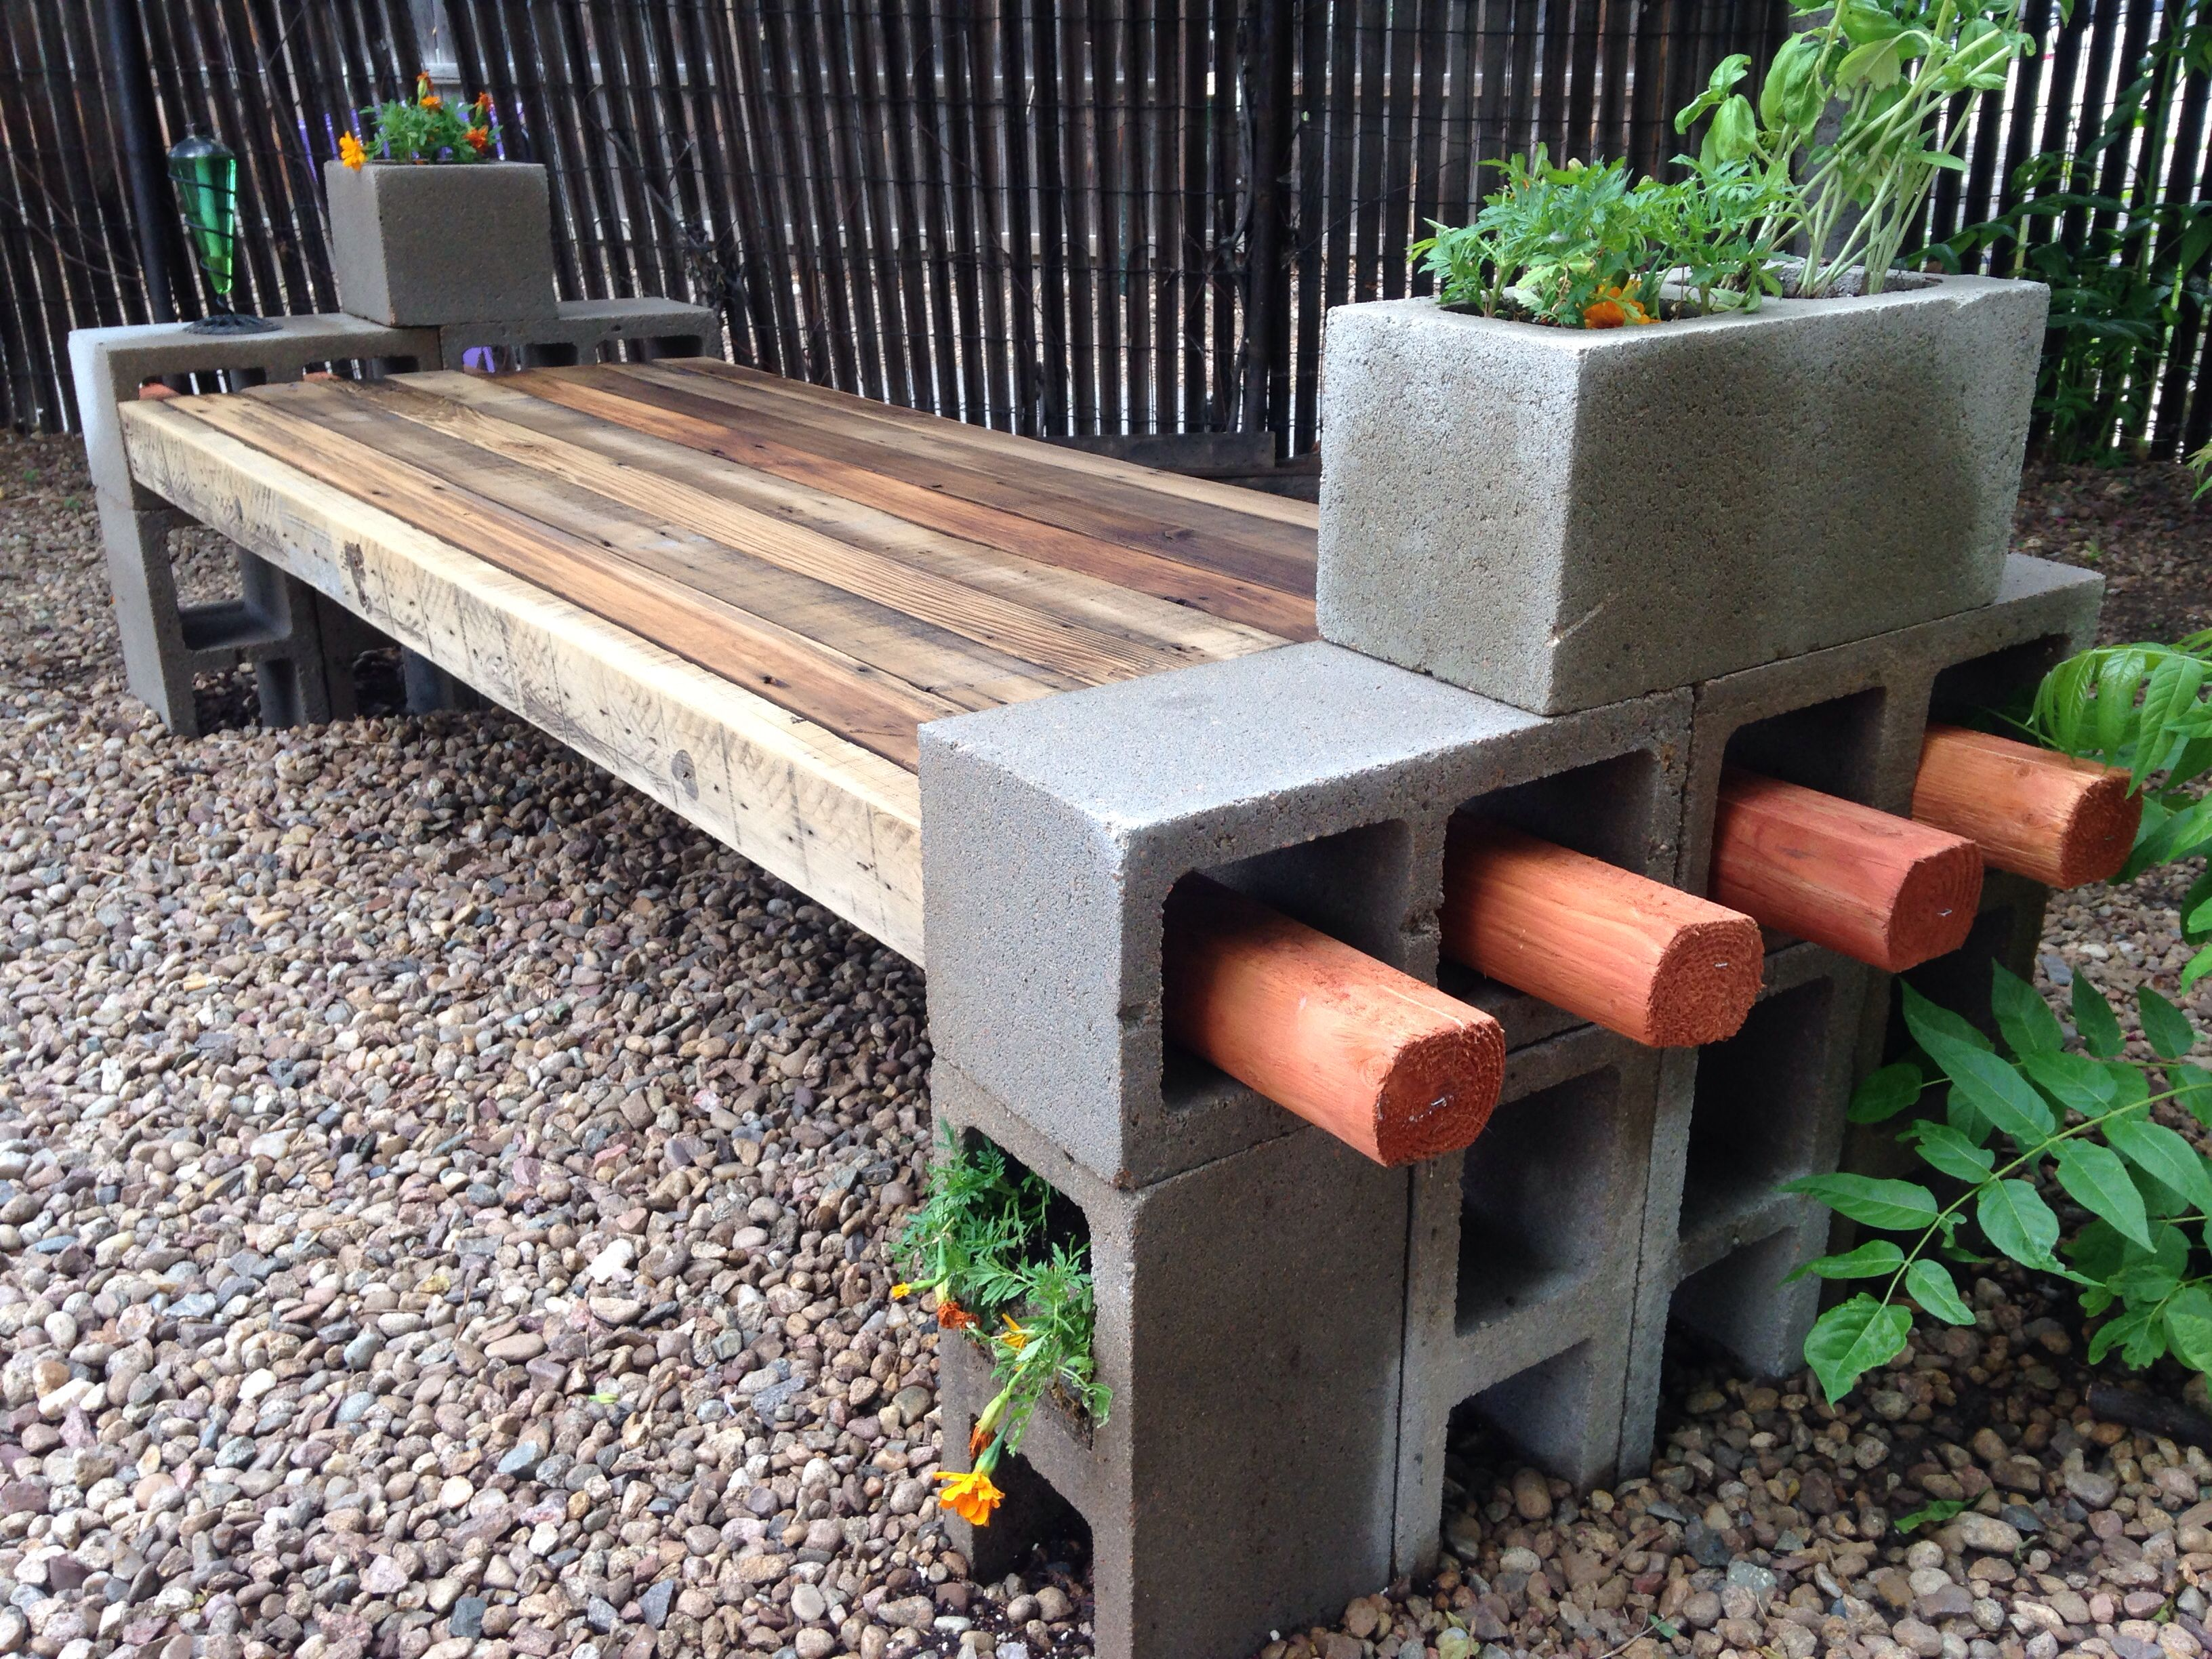 Diy patio furniture cinder blocks - My Take On The Cinder Block Bench Using Repurposed Fence Wood